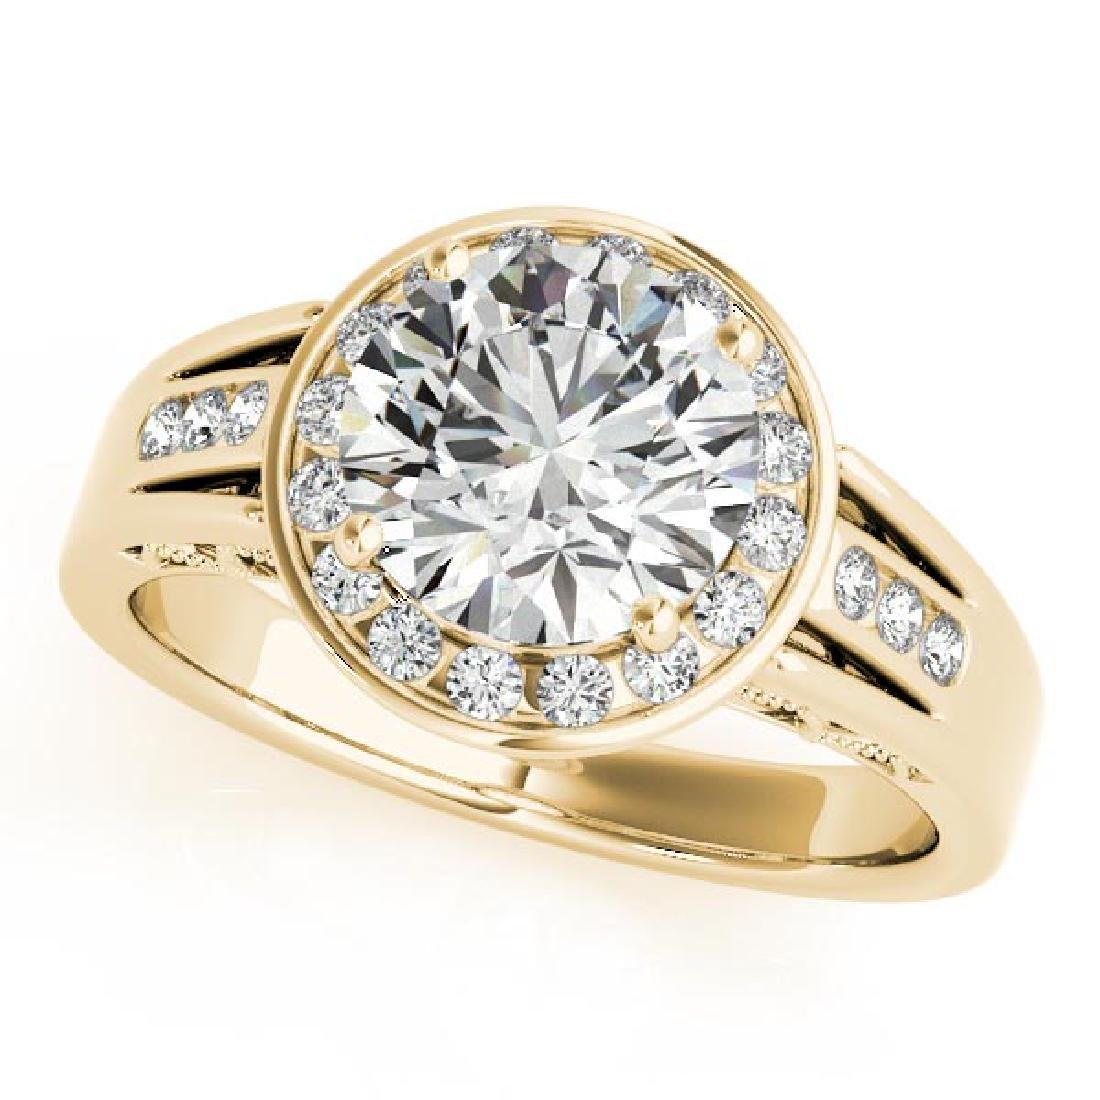 CERTIFIED 18K YELLOW GOLD .77 CT G-H/VS-SI1 DIAMOND HAL